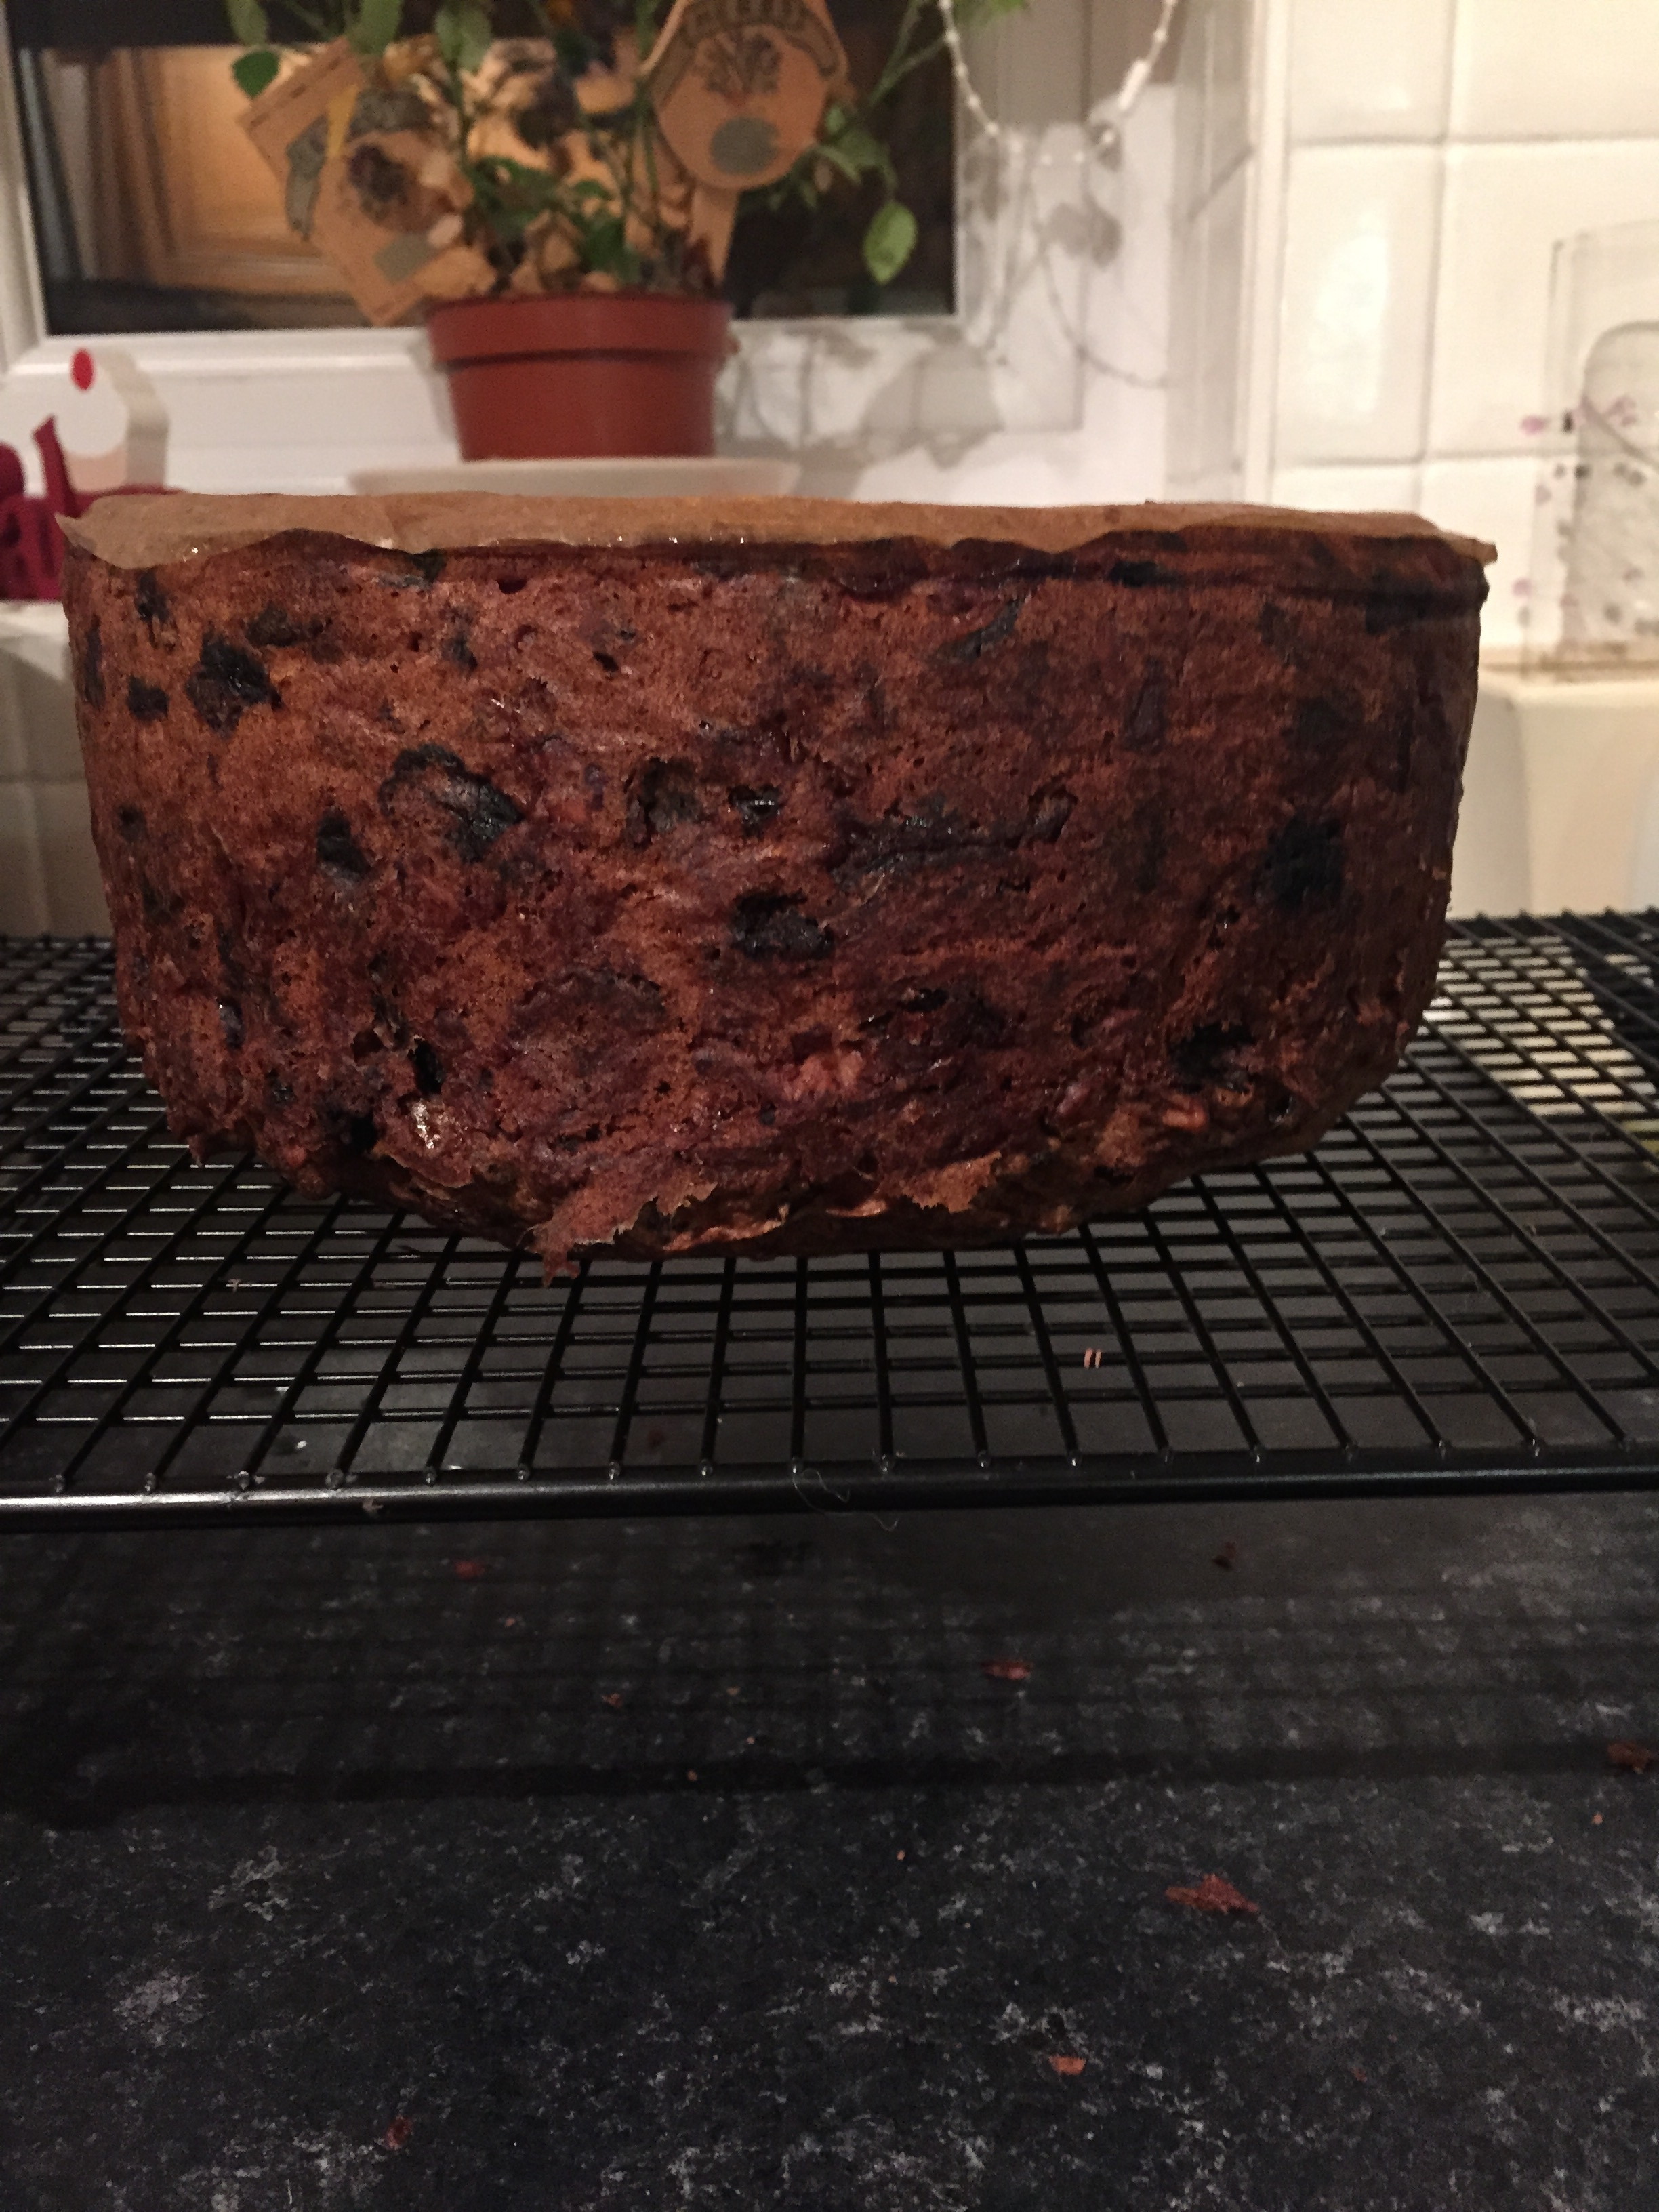 My 2015 Gluten free Christmas cake inspired by Grandma